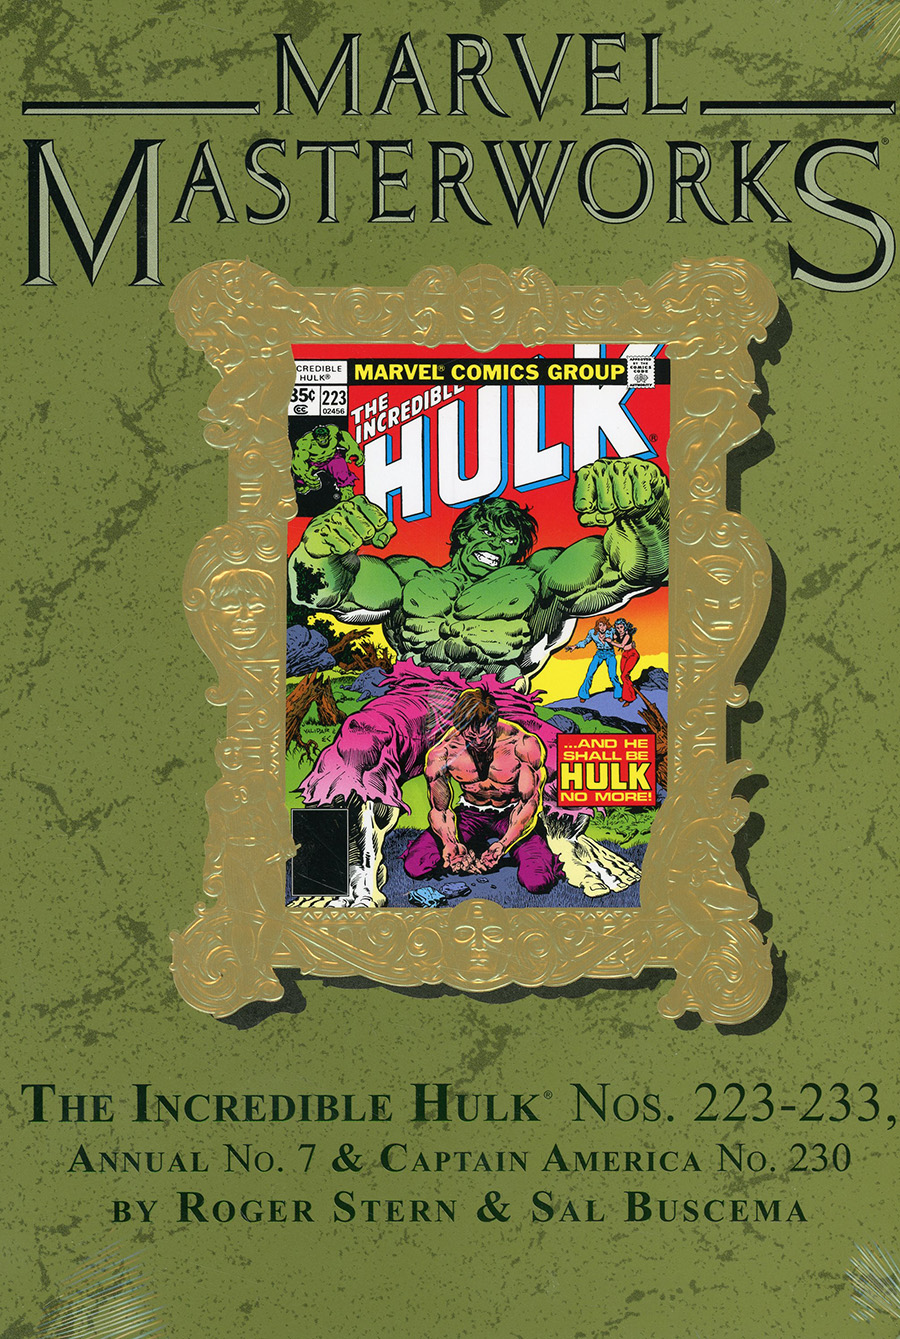 Marvel Masterworks Incredible Hulk Vol 14 HC Variant Dust Jacket